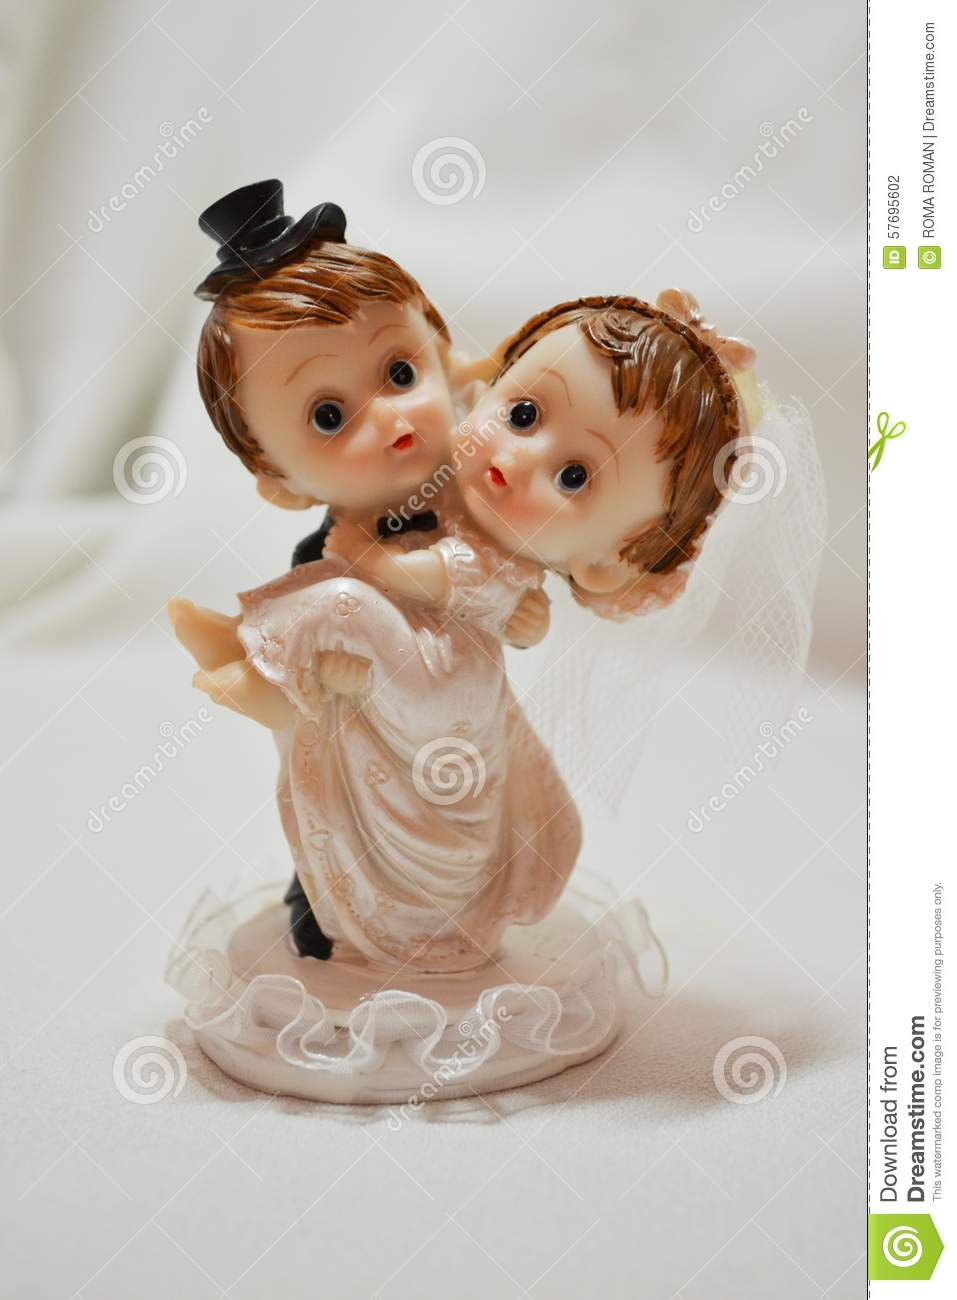 Wedding Gift For 80 Year Old Couple : Souvenir statuette-small gift to happy couple on wedding.